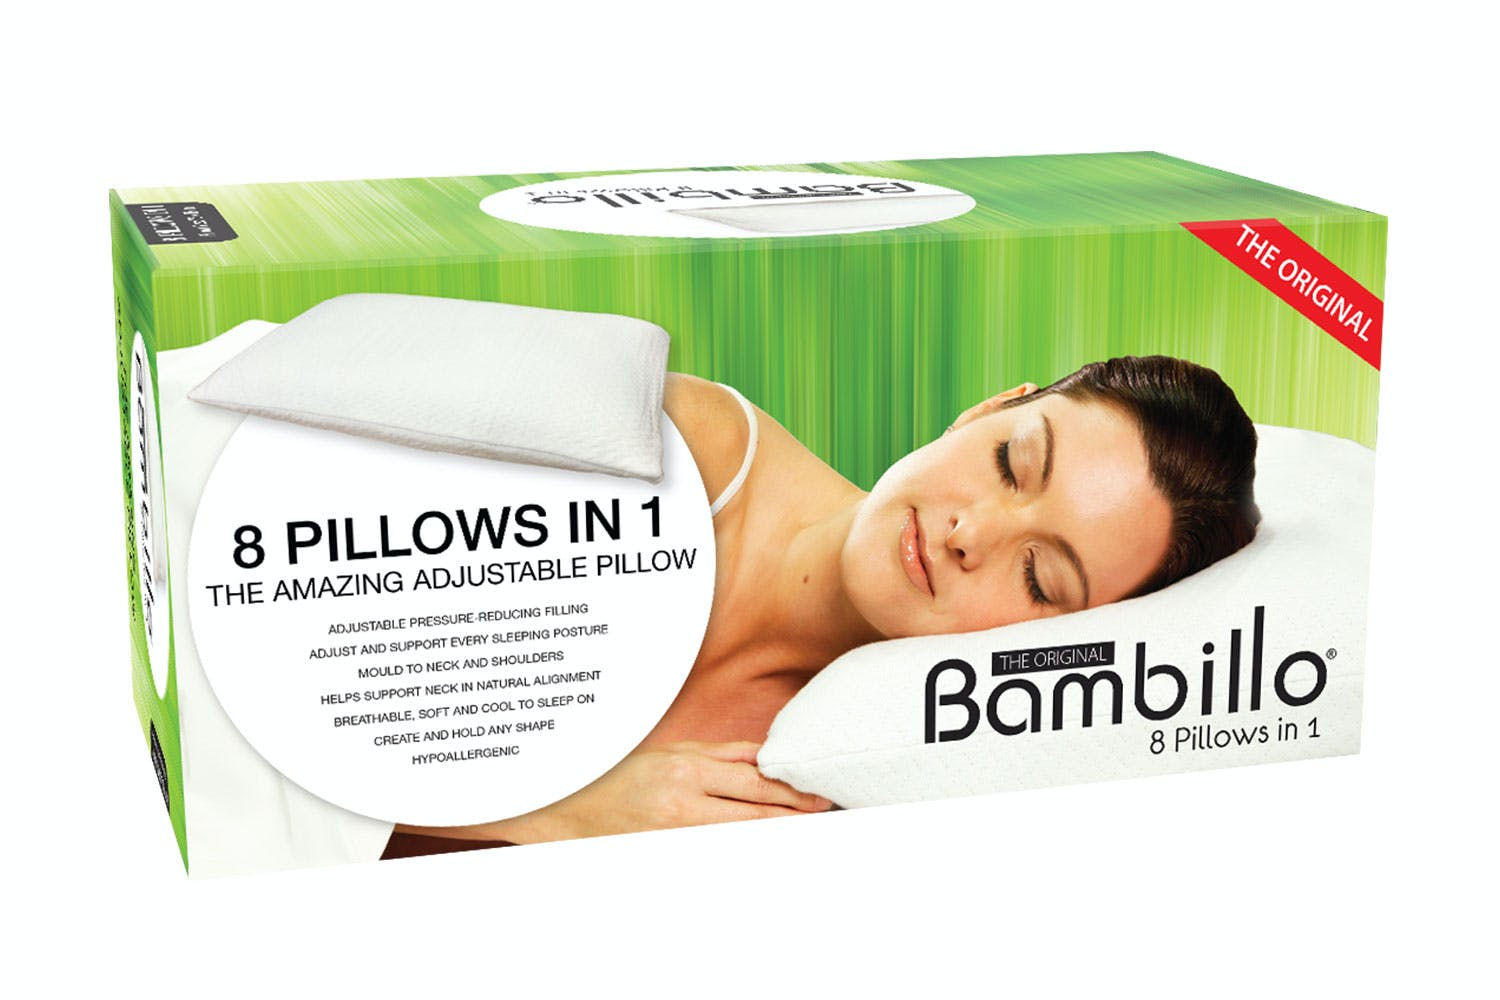 Image of The Original Bambillo 8-in-1 Pillow